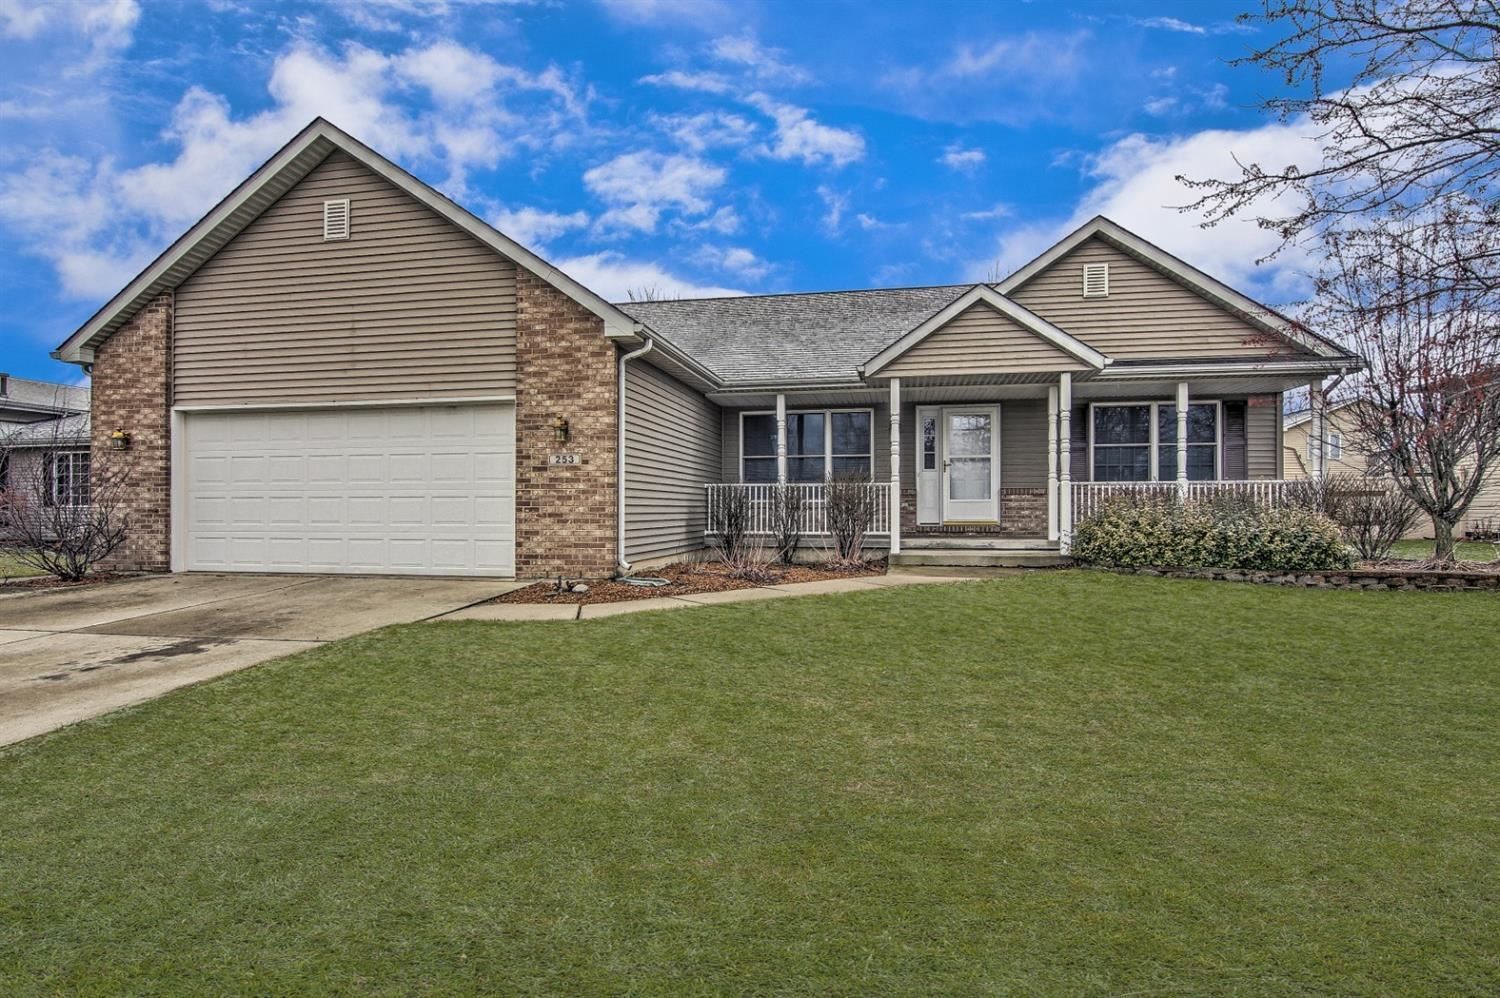 253 W 128th Avenue, Crown Point, IN 46307 - #: 467617